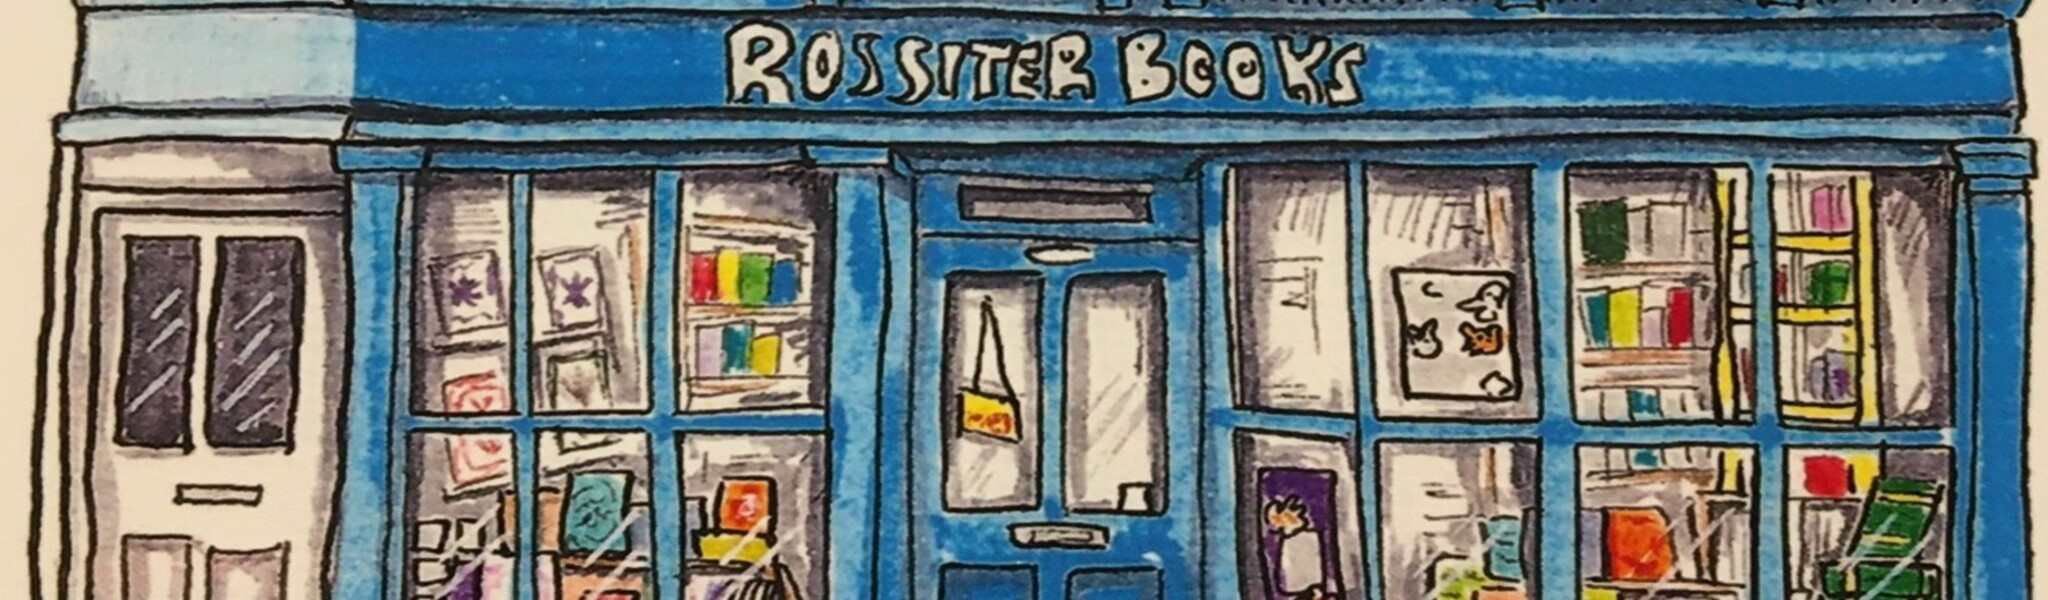 Rossiter Books